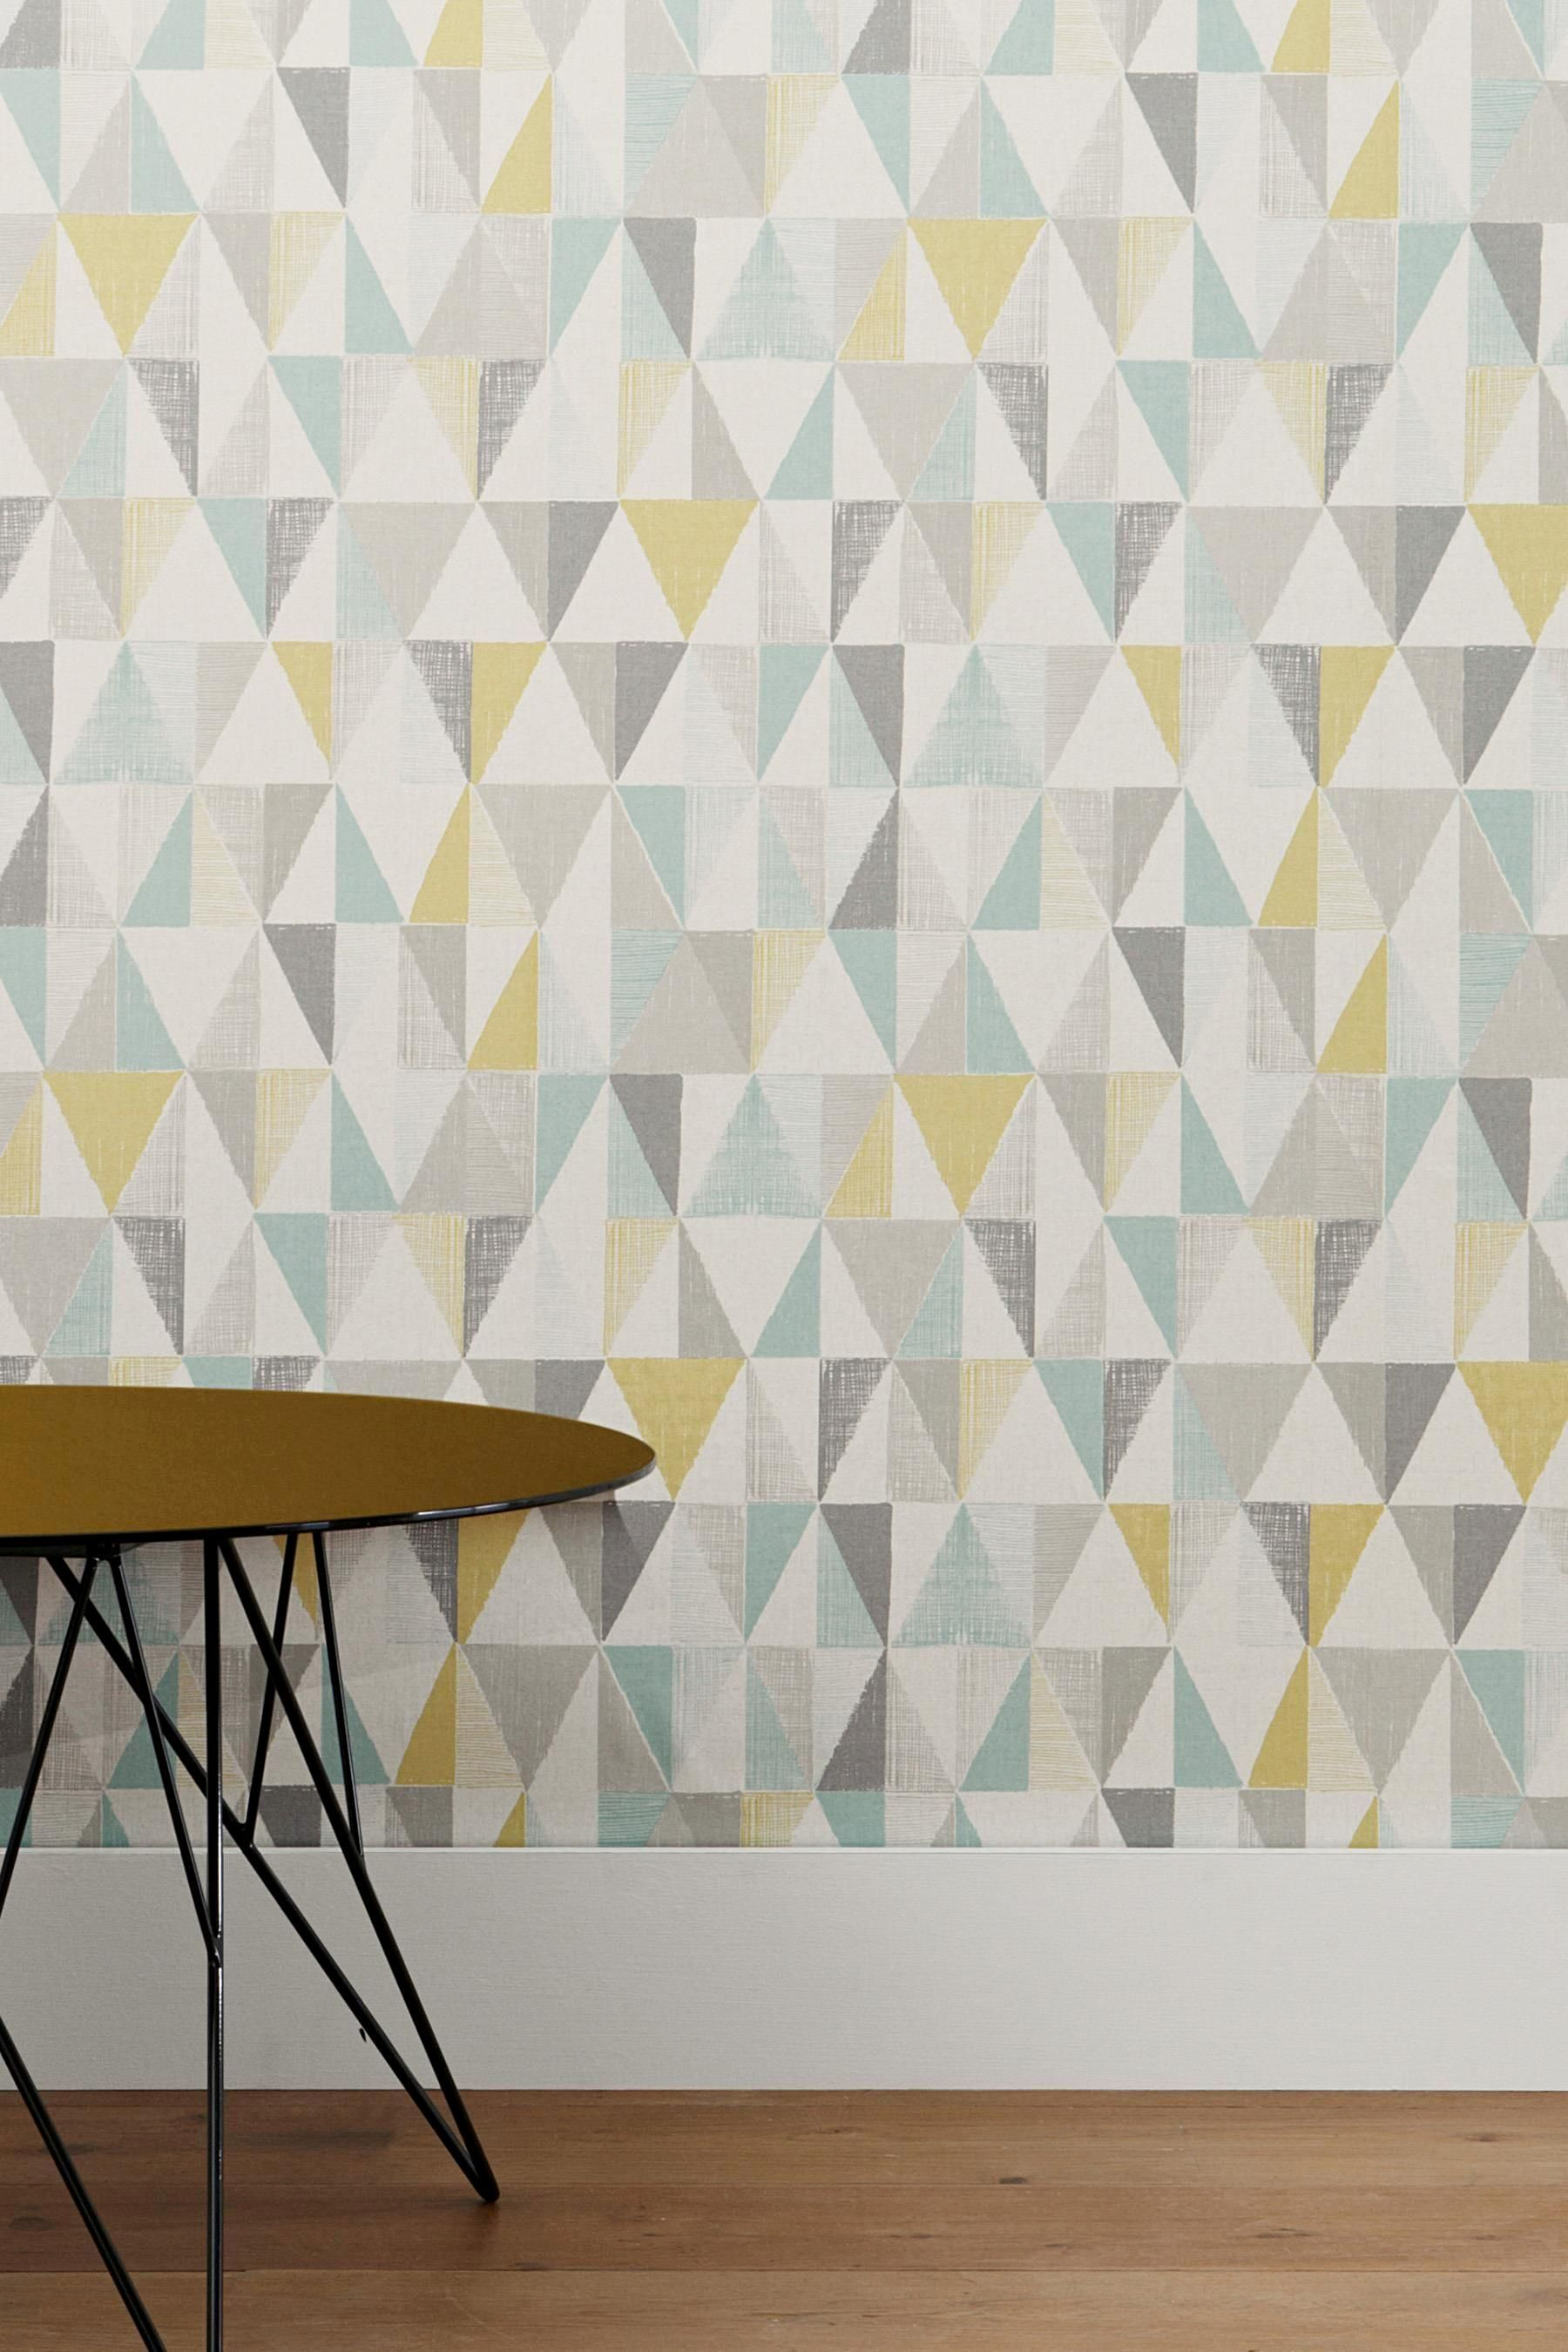 Affordable and stylish wallpaper from next fresh design blog for Home wallpaper trends